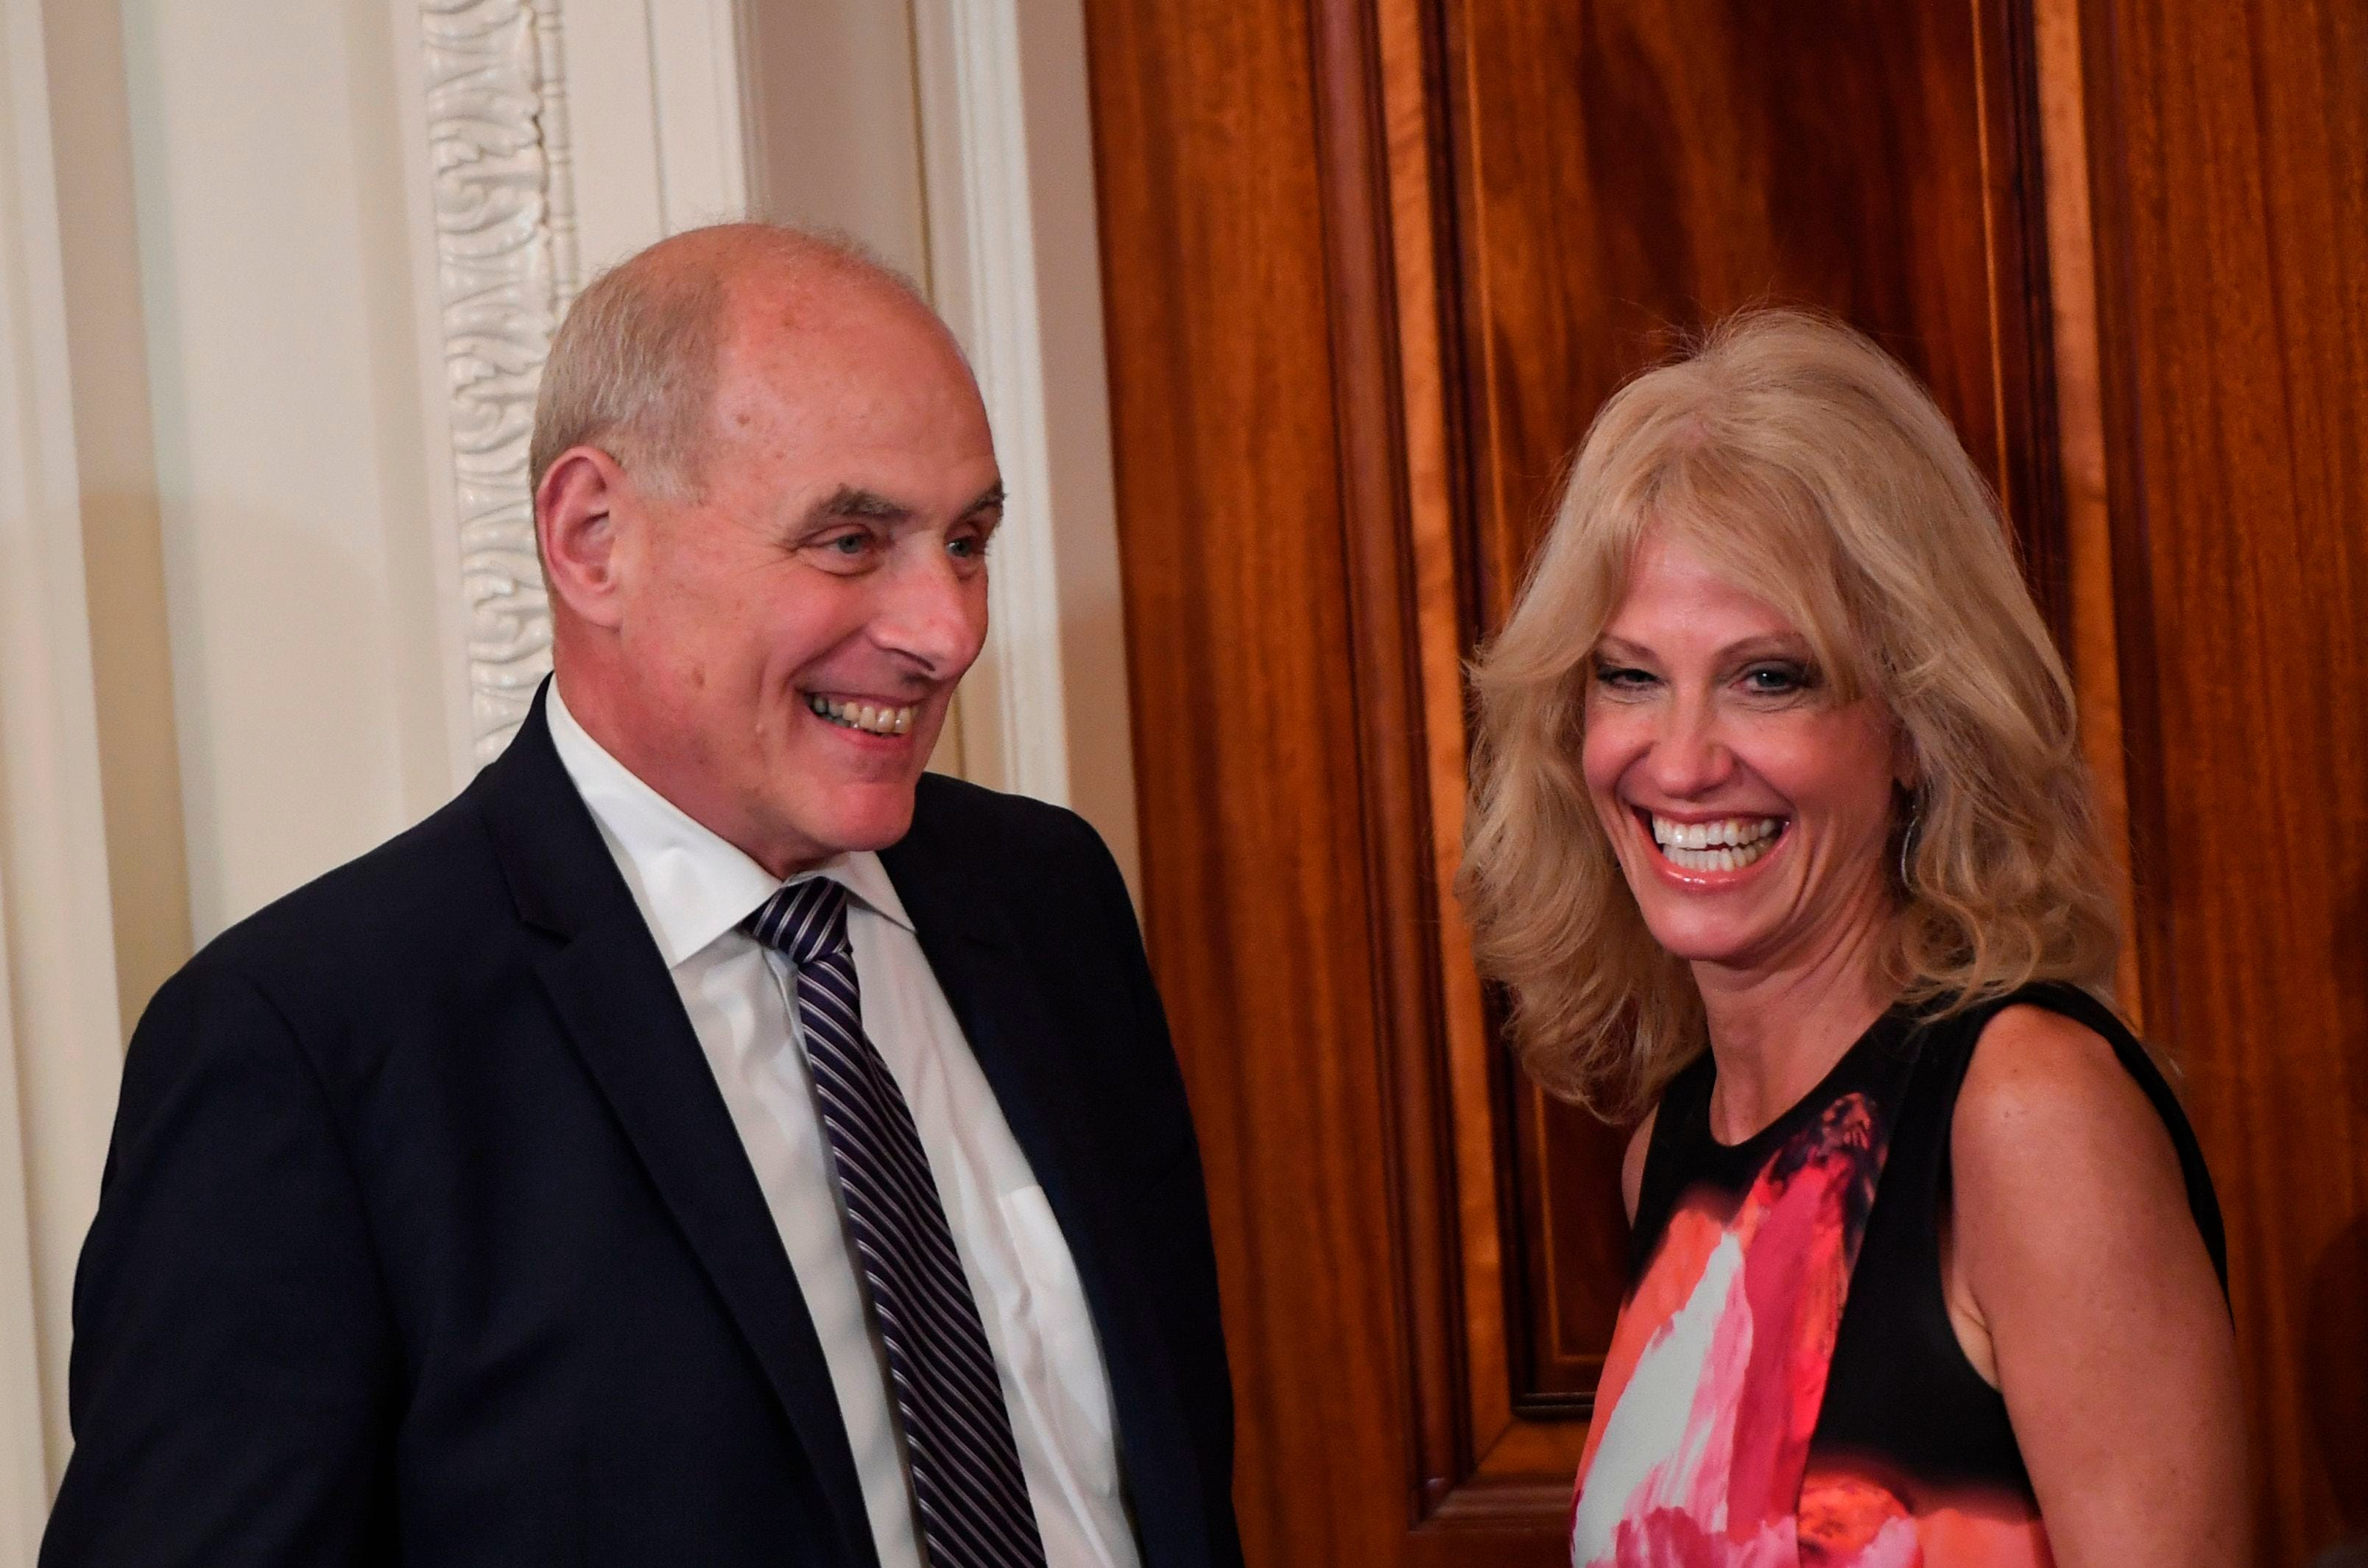 White House 'absolutely' has confidentiality agreements with staffers, Trump adviser Kellyanne Conway says